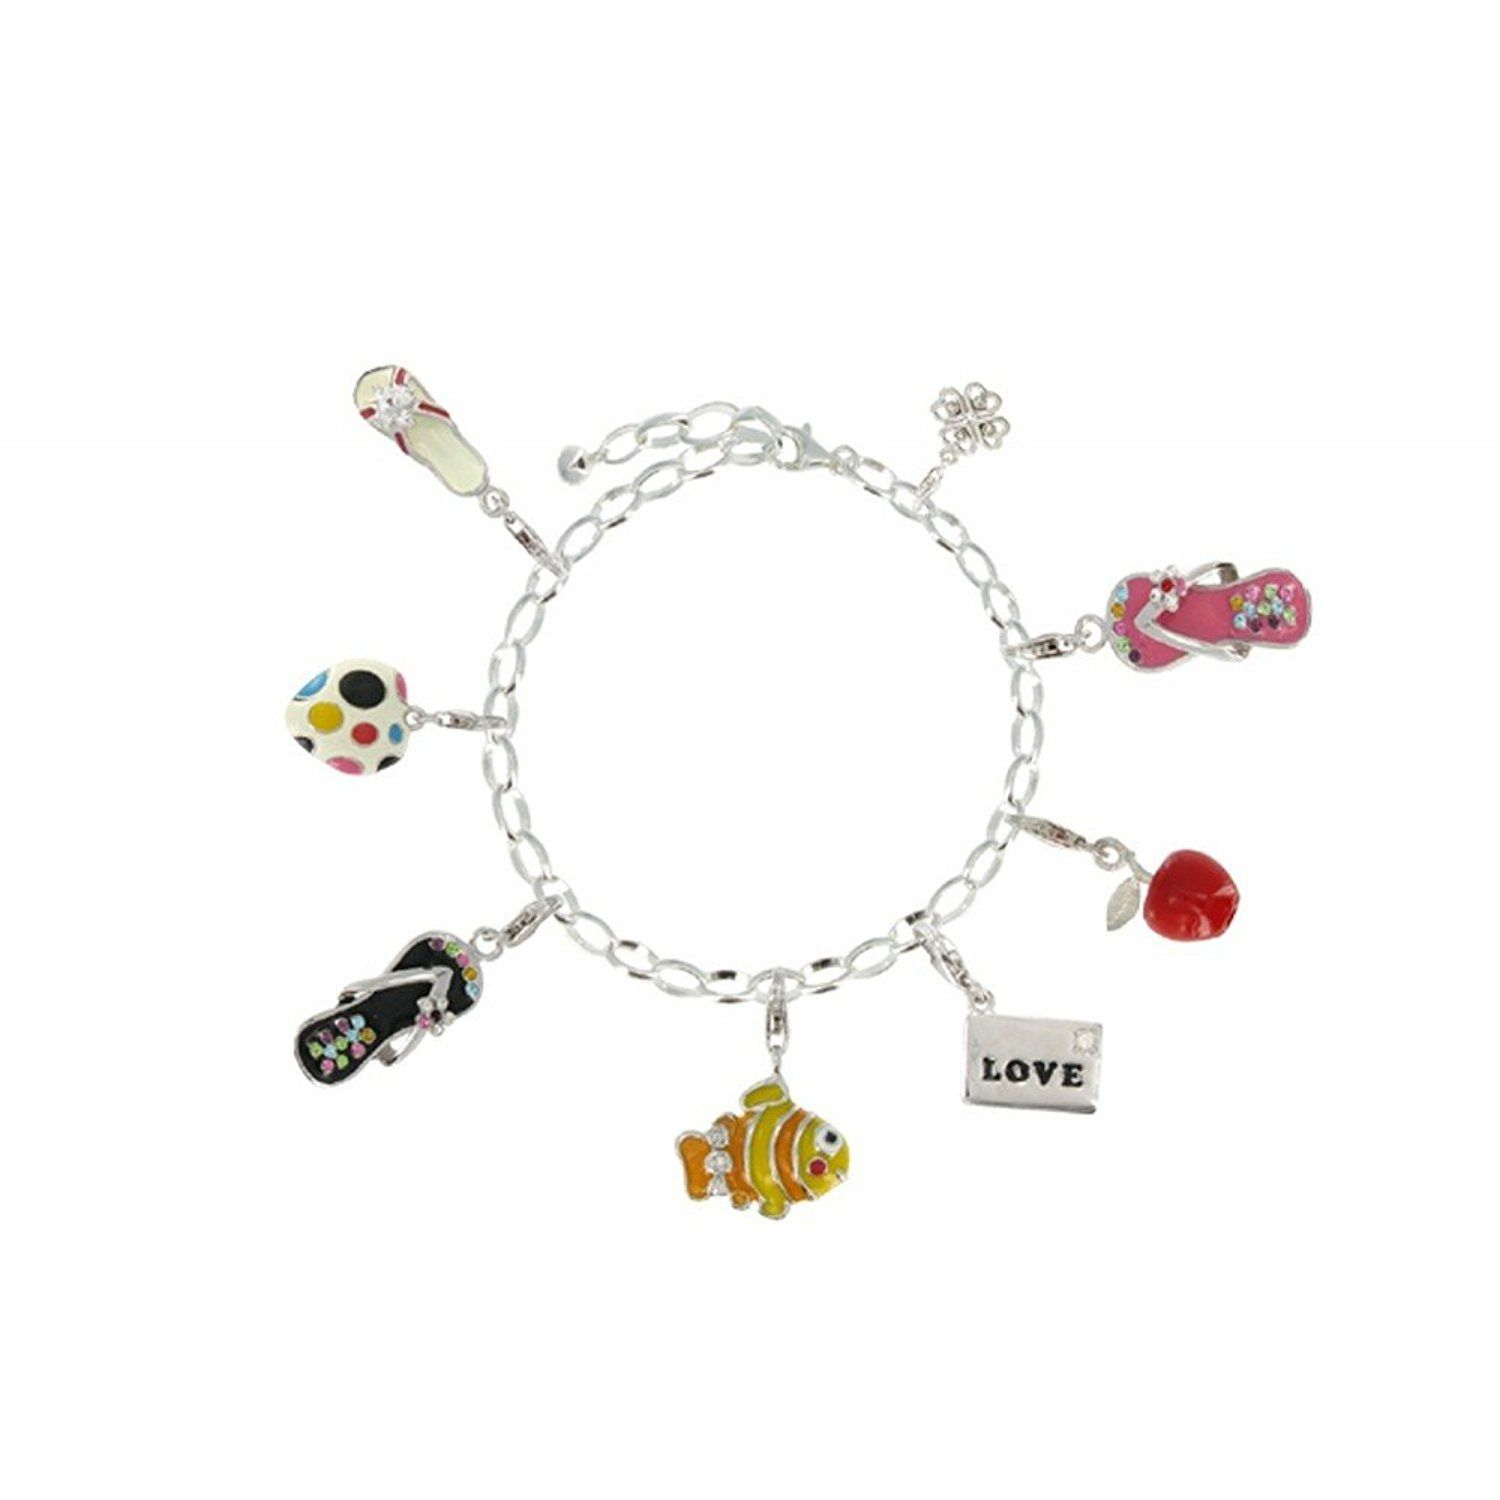 Les Poulettes Jewels Charms Bracelet 925 Sterling Silver - 7.5 Inch 9b4C9glP